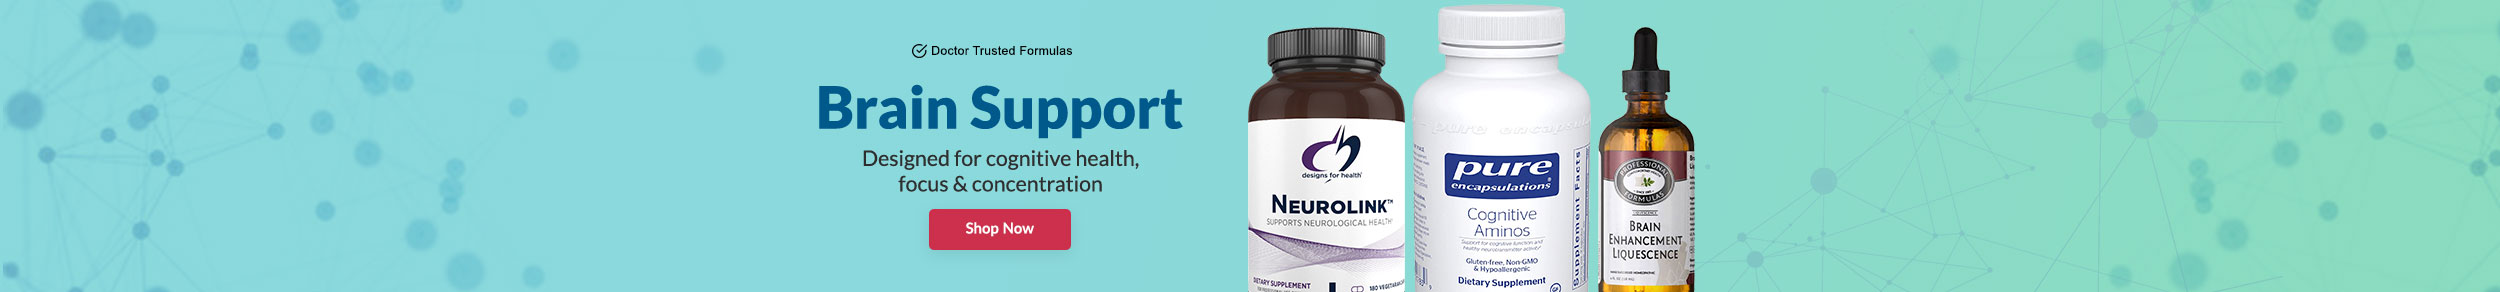 Brain Support - Designed for cognitive & mood health